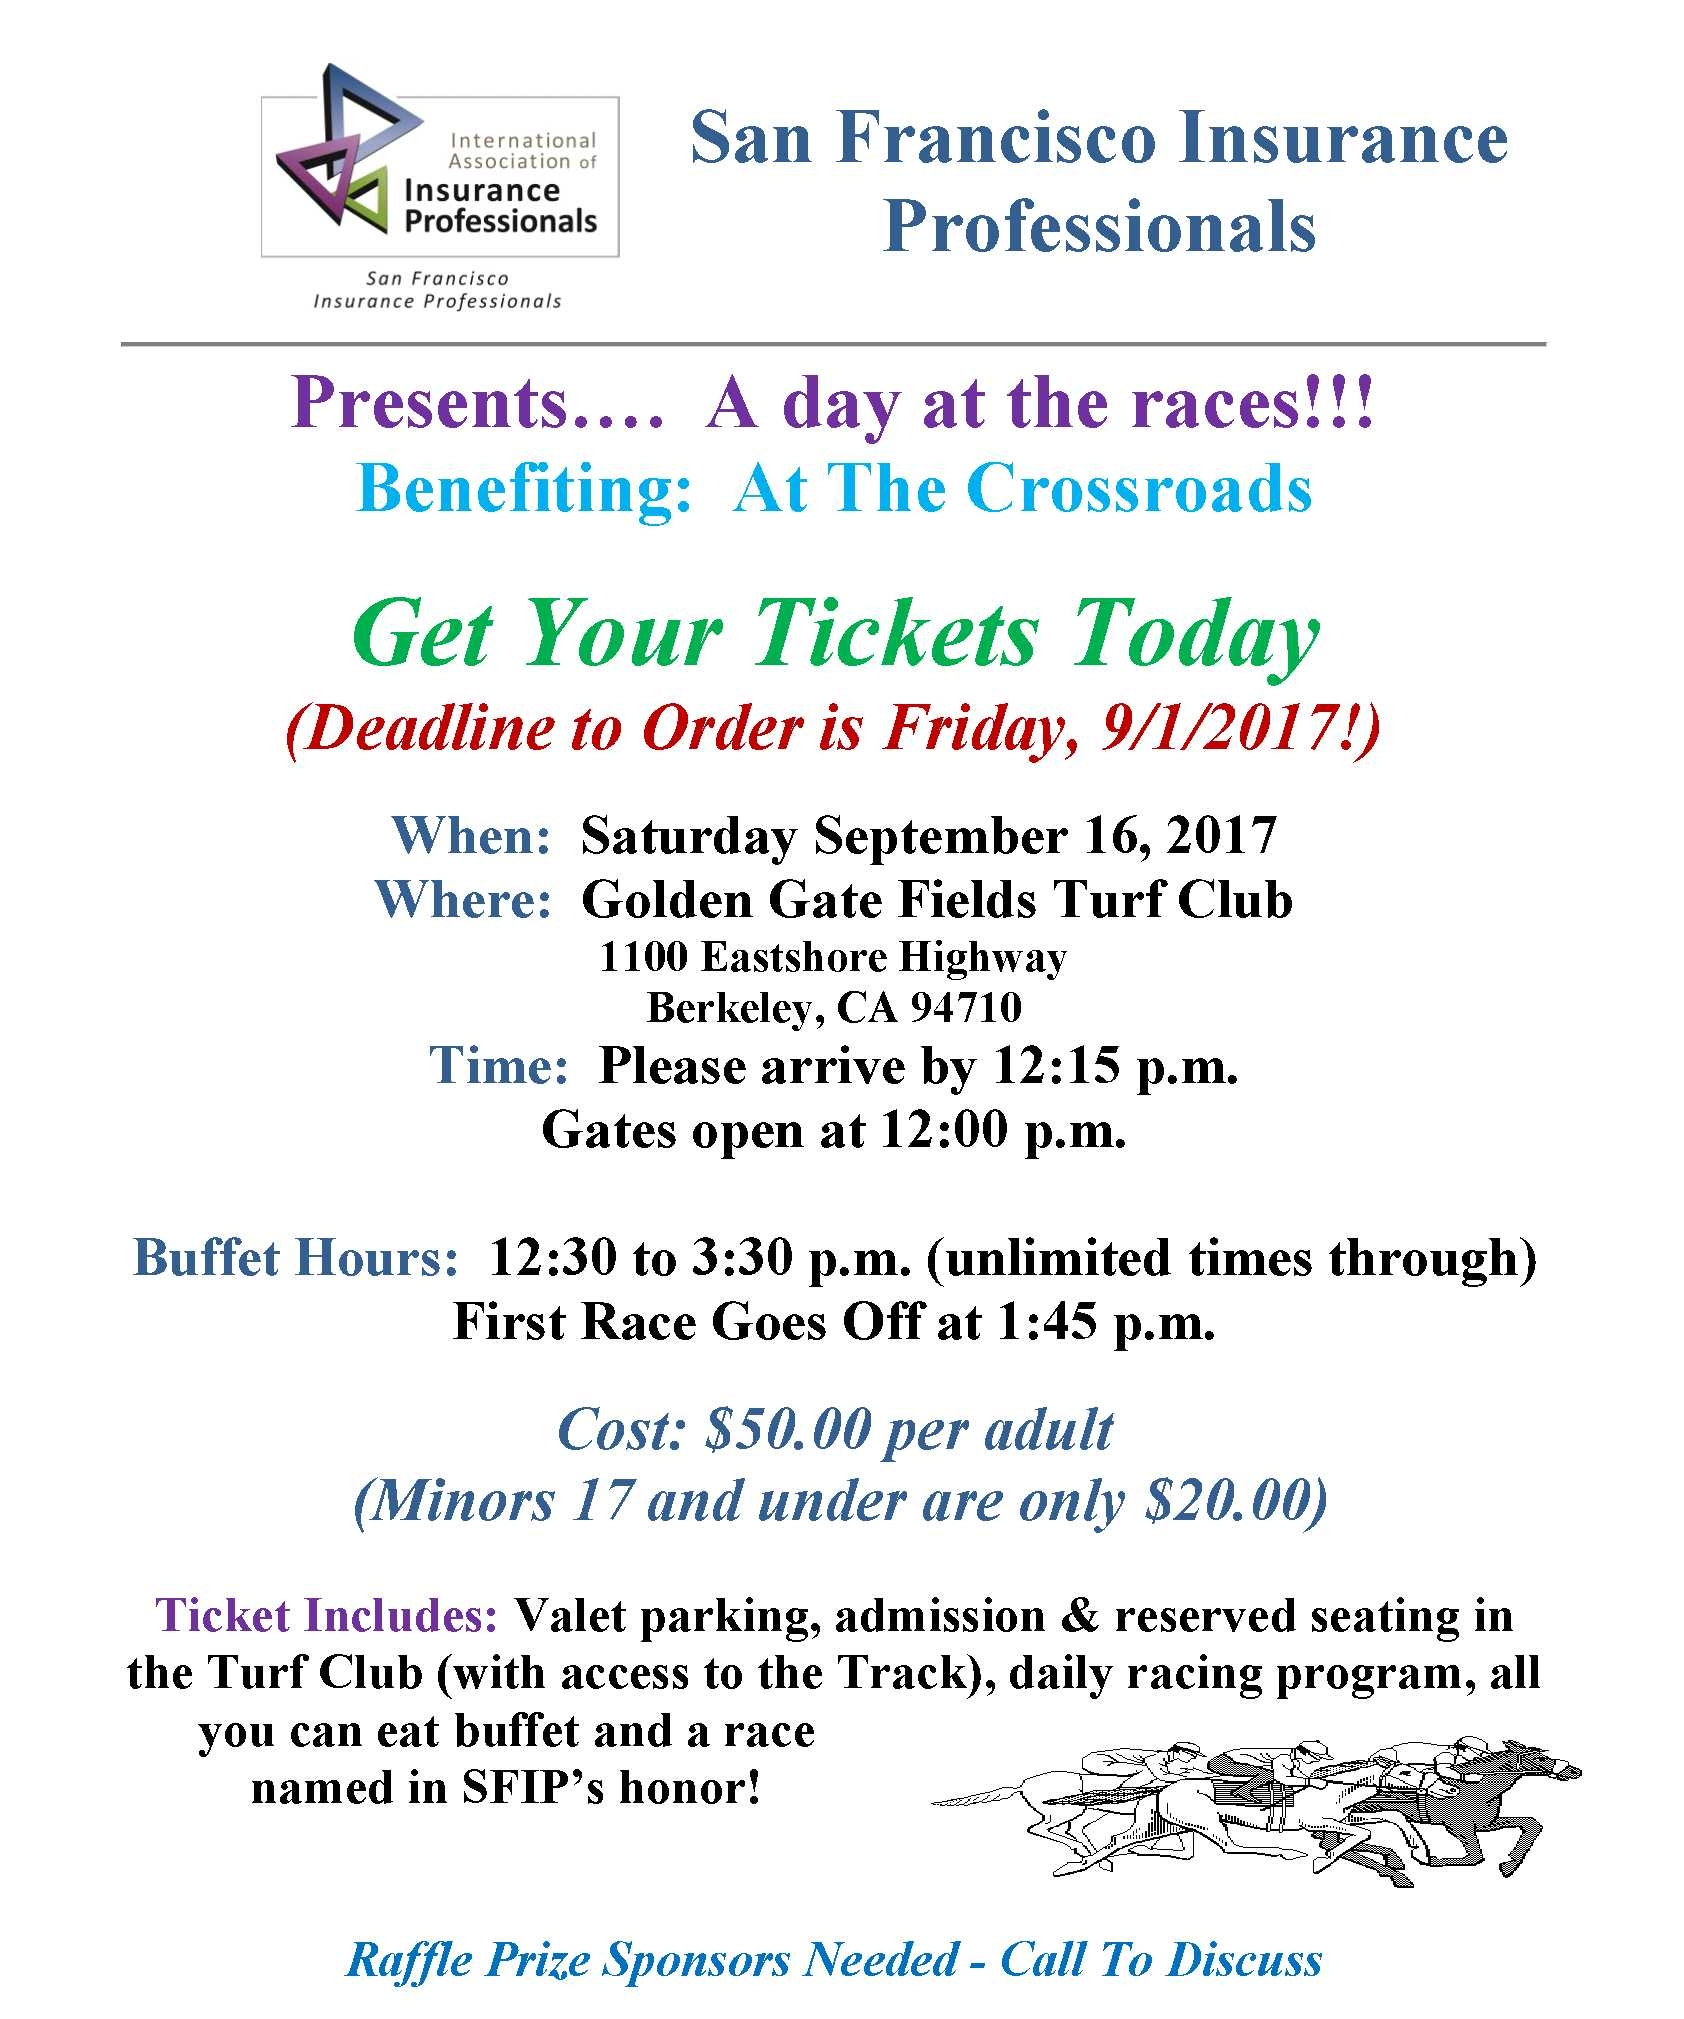 2017 Day at the Races Flyer - Final_1.jpg